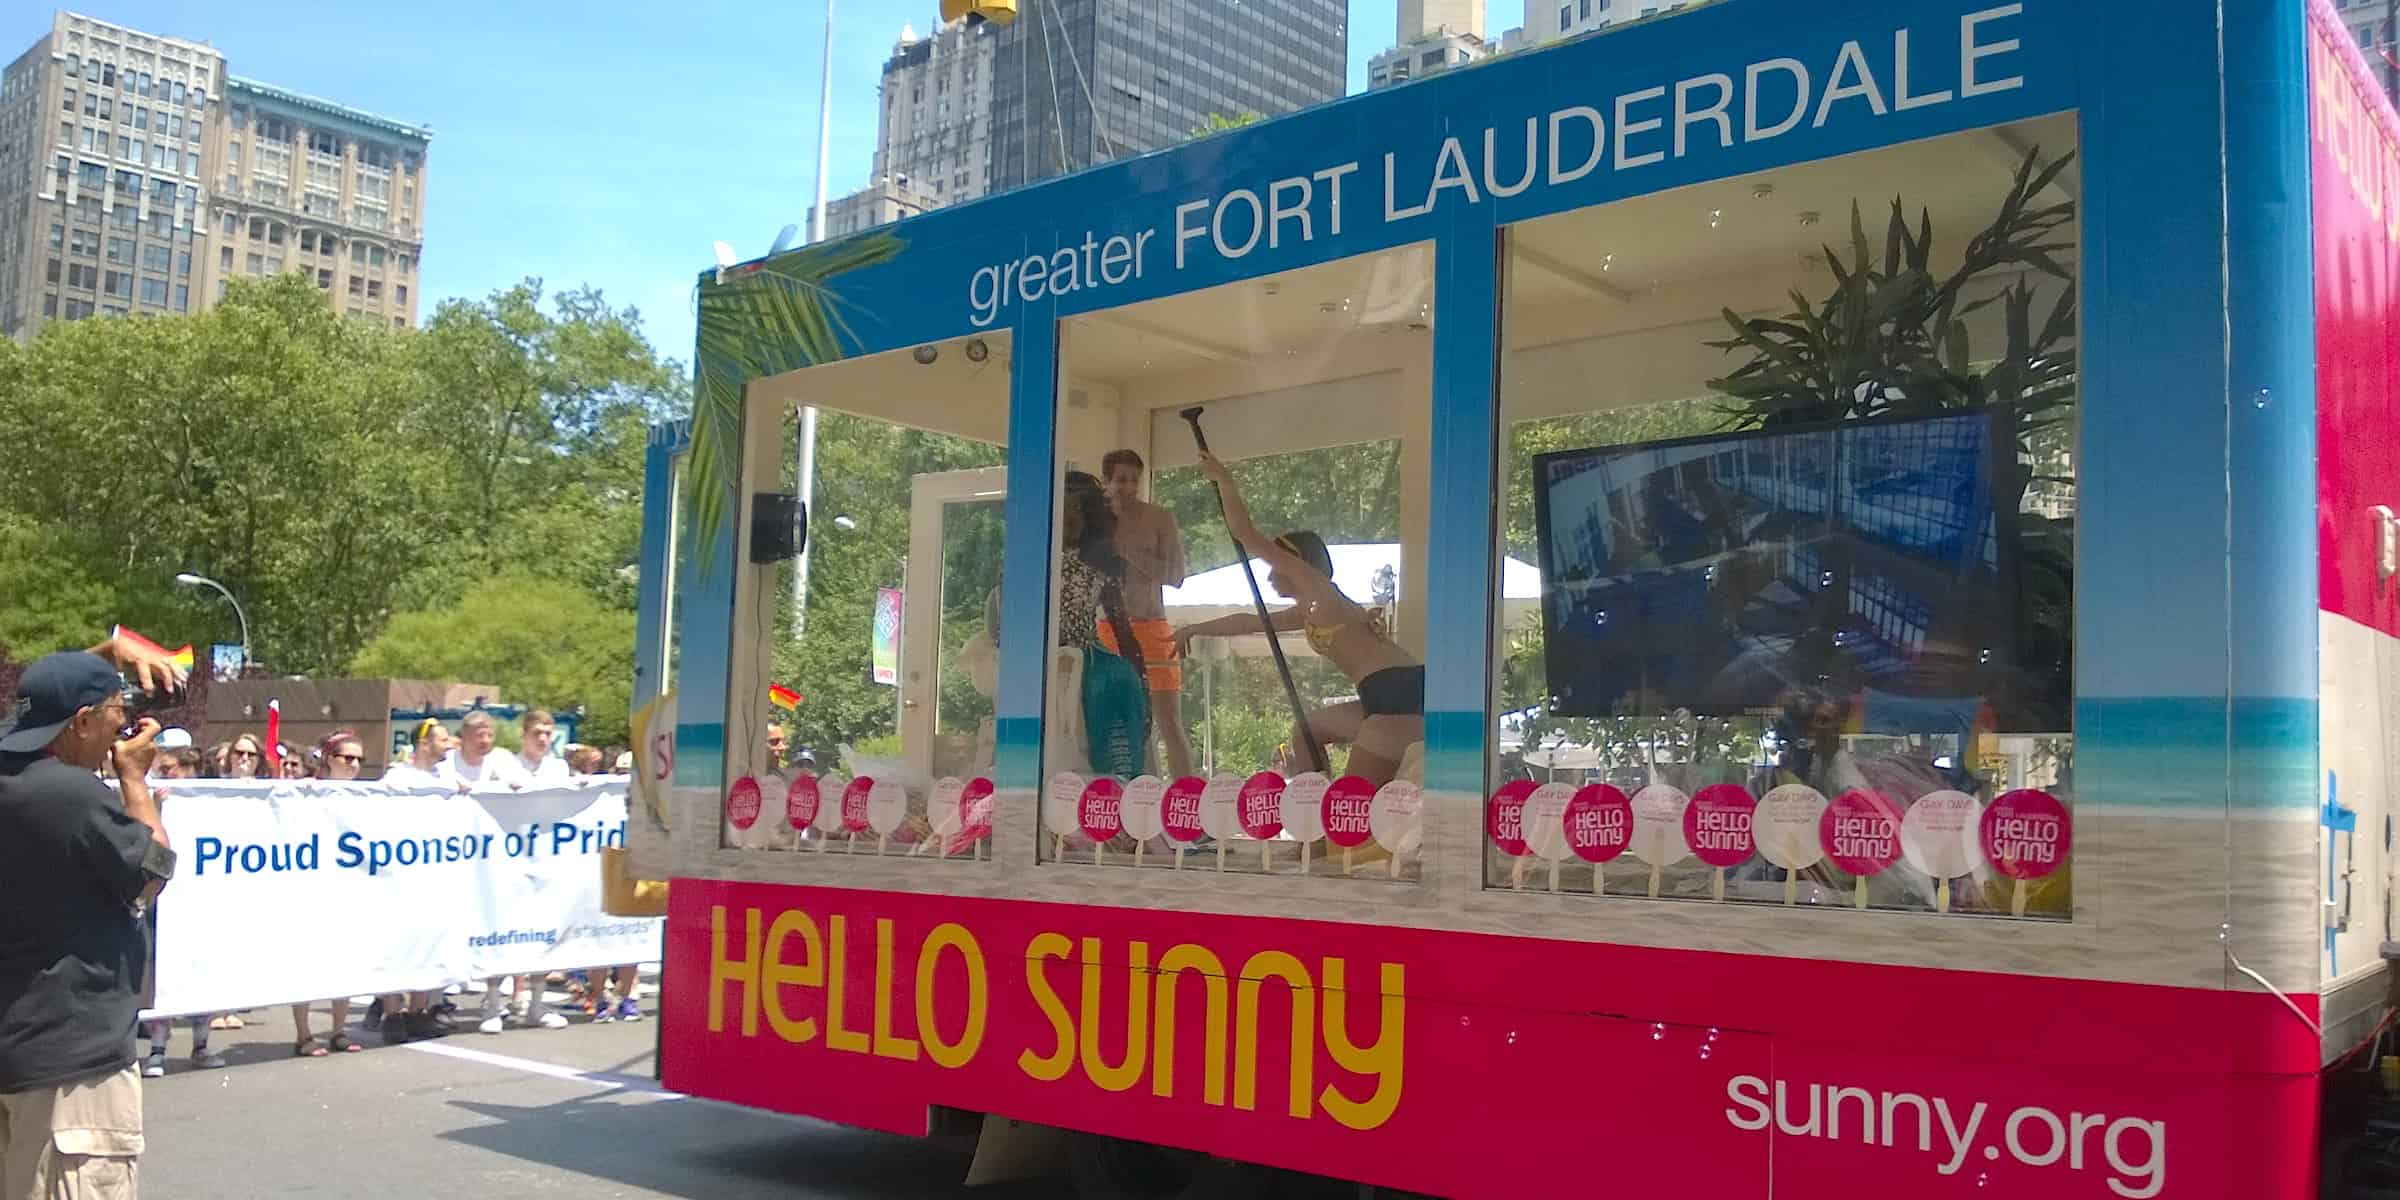 Florida Tourism Marketing Pride LGTB Activation - NYC PrideFest